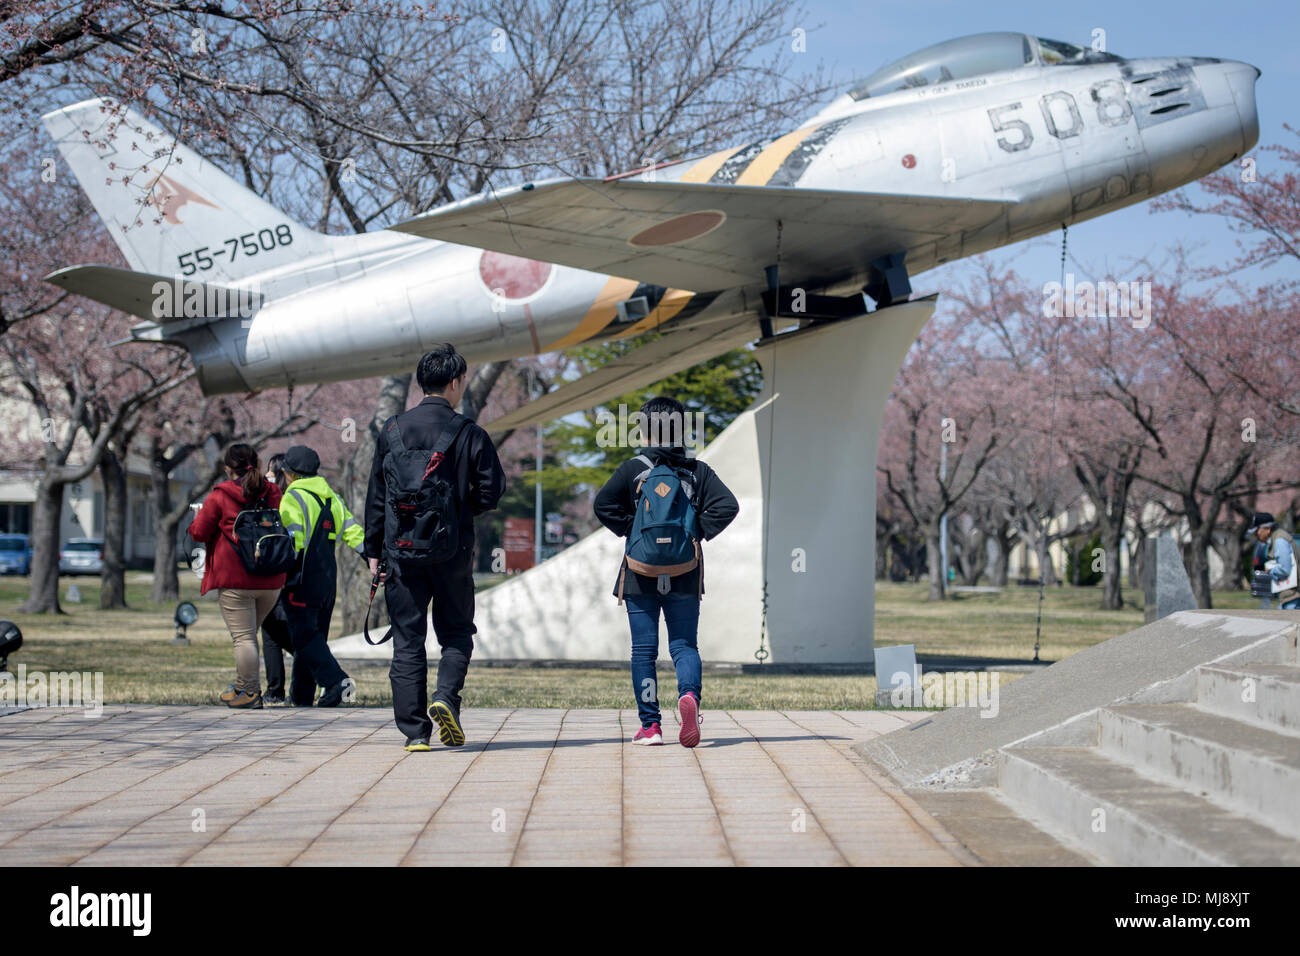 "Japanese locals participating in Misawa City's monthly Friendship Tour received a first-ever visit with the Pacific Air Forces' F-16 Demonstration Team along with the regularly scheduled windshield tour at Misawa Air Base, Japan, April 19, 2018. The Friendship Tour, previously called the Friday Tour, offers Japanese community members an opportunity to experience Team Misawa operational missions first-hand. Misawa City and Misawa Air Base began the tour nearly 20 years ago and continue working together to embrace their shared motto, ""Co-existence and Co-prosperity."" (U.S. Air Force photo by Tec - Stock Image"